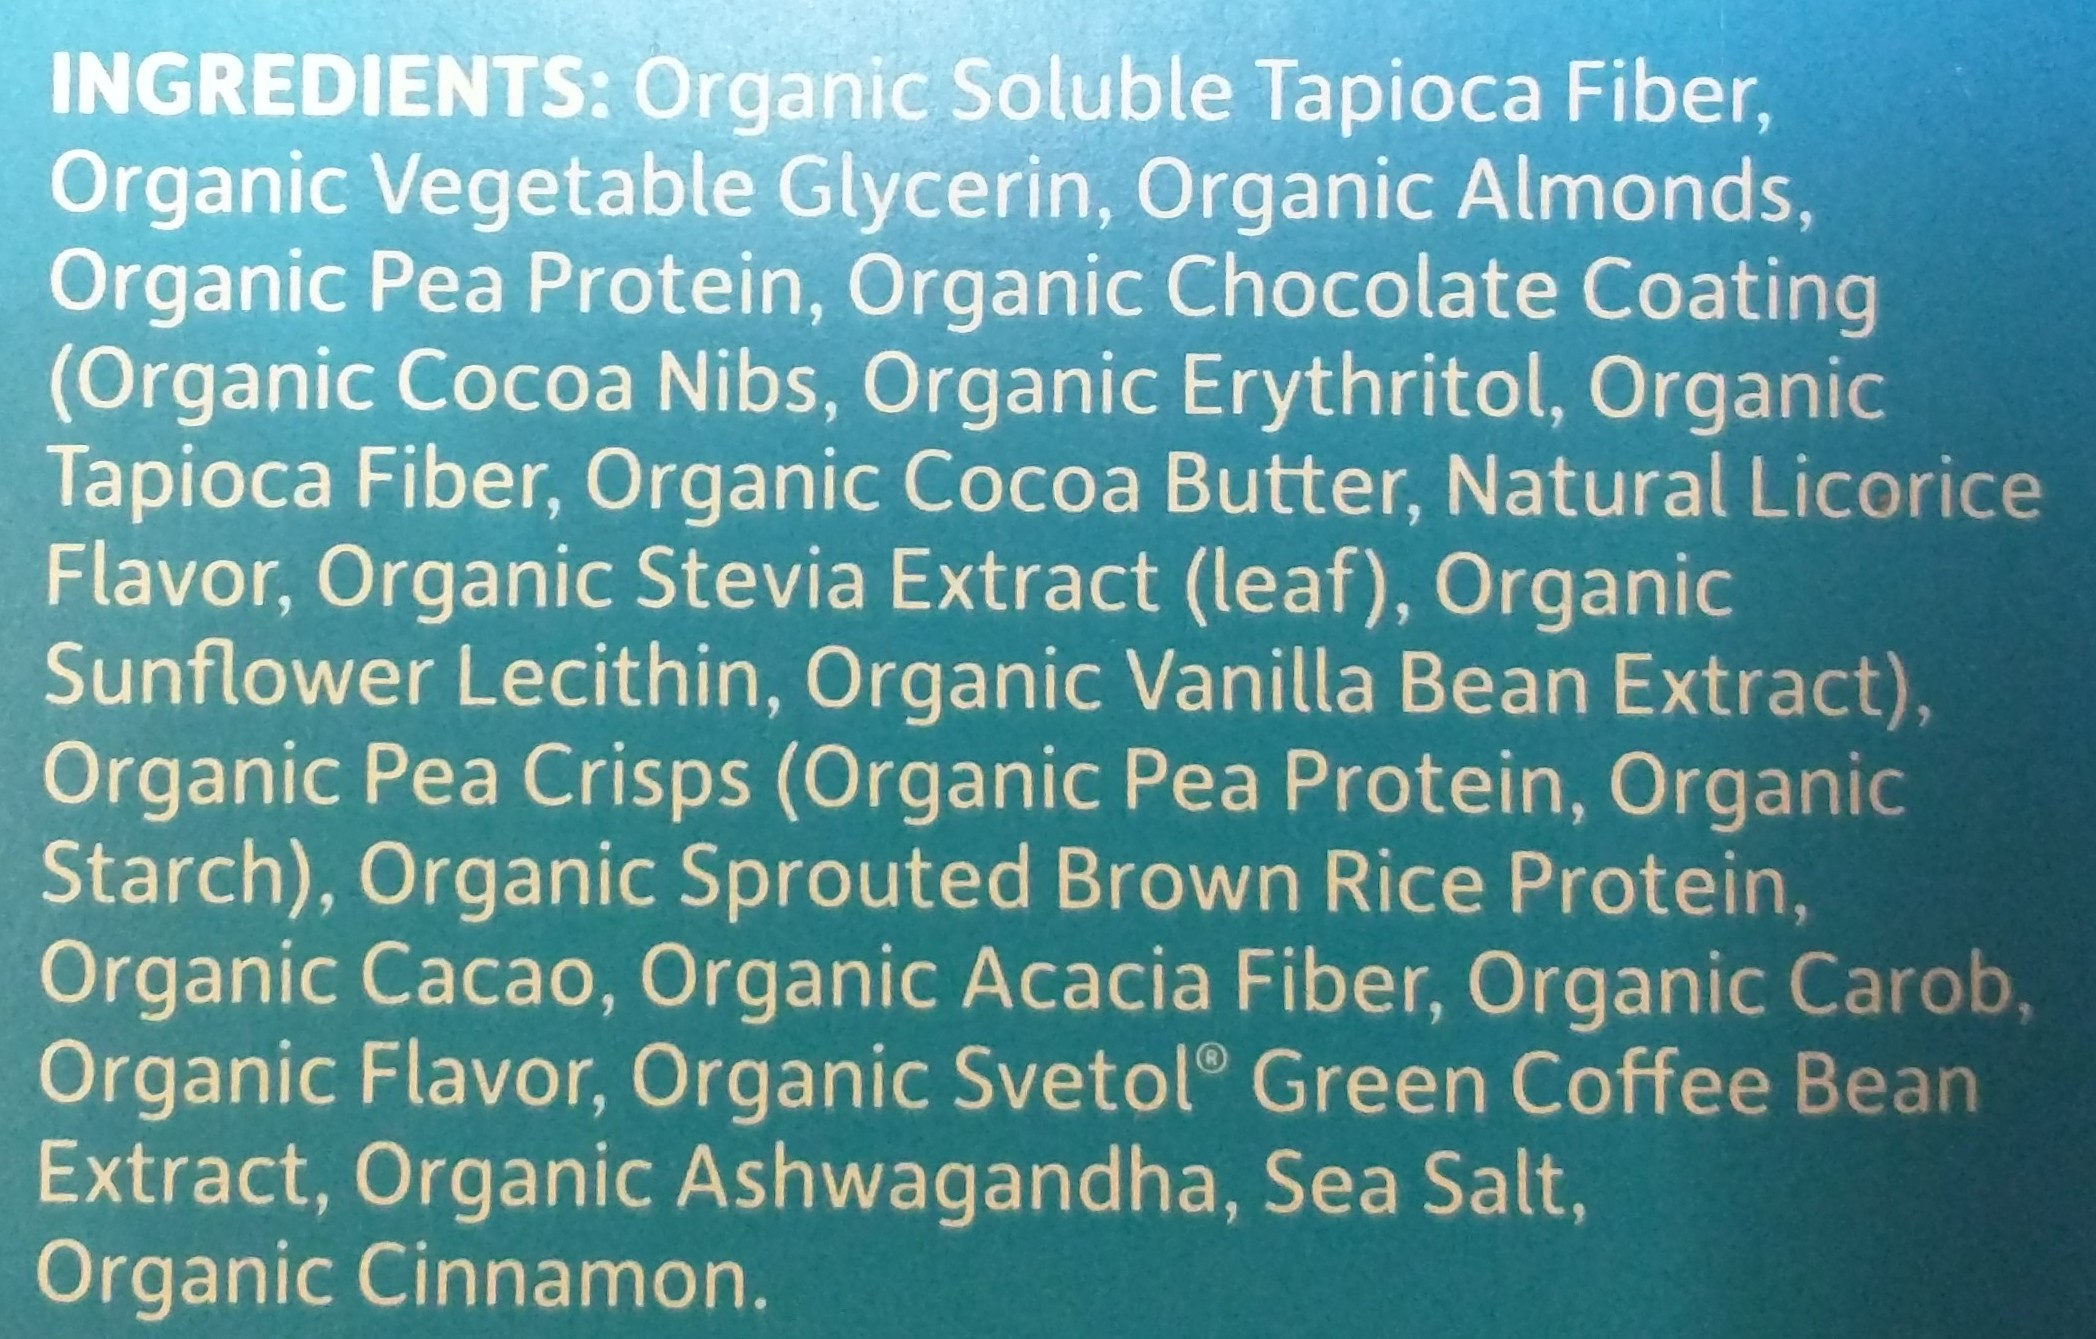 Plant-based high protein weight loss bar - Ingredients - en